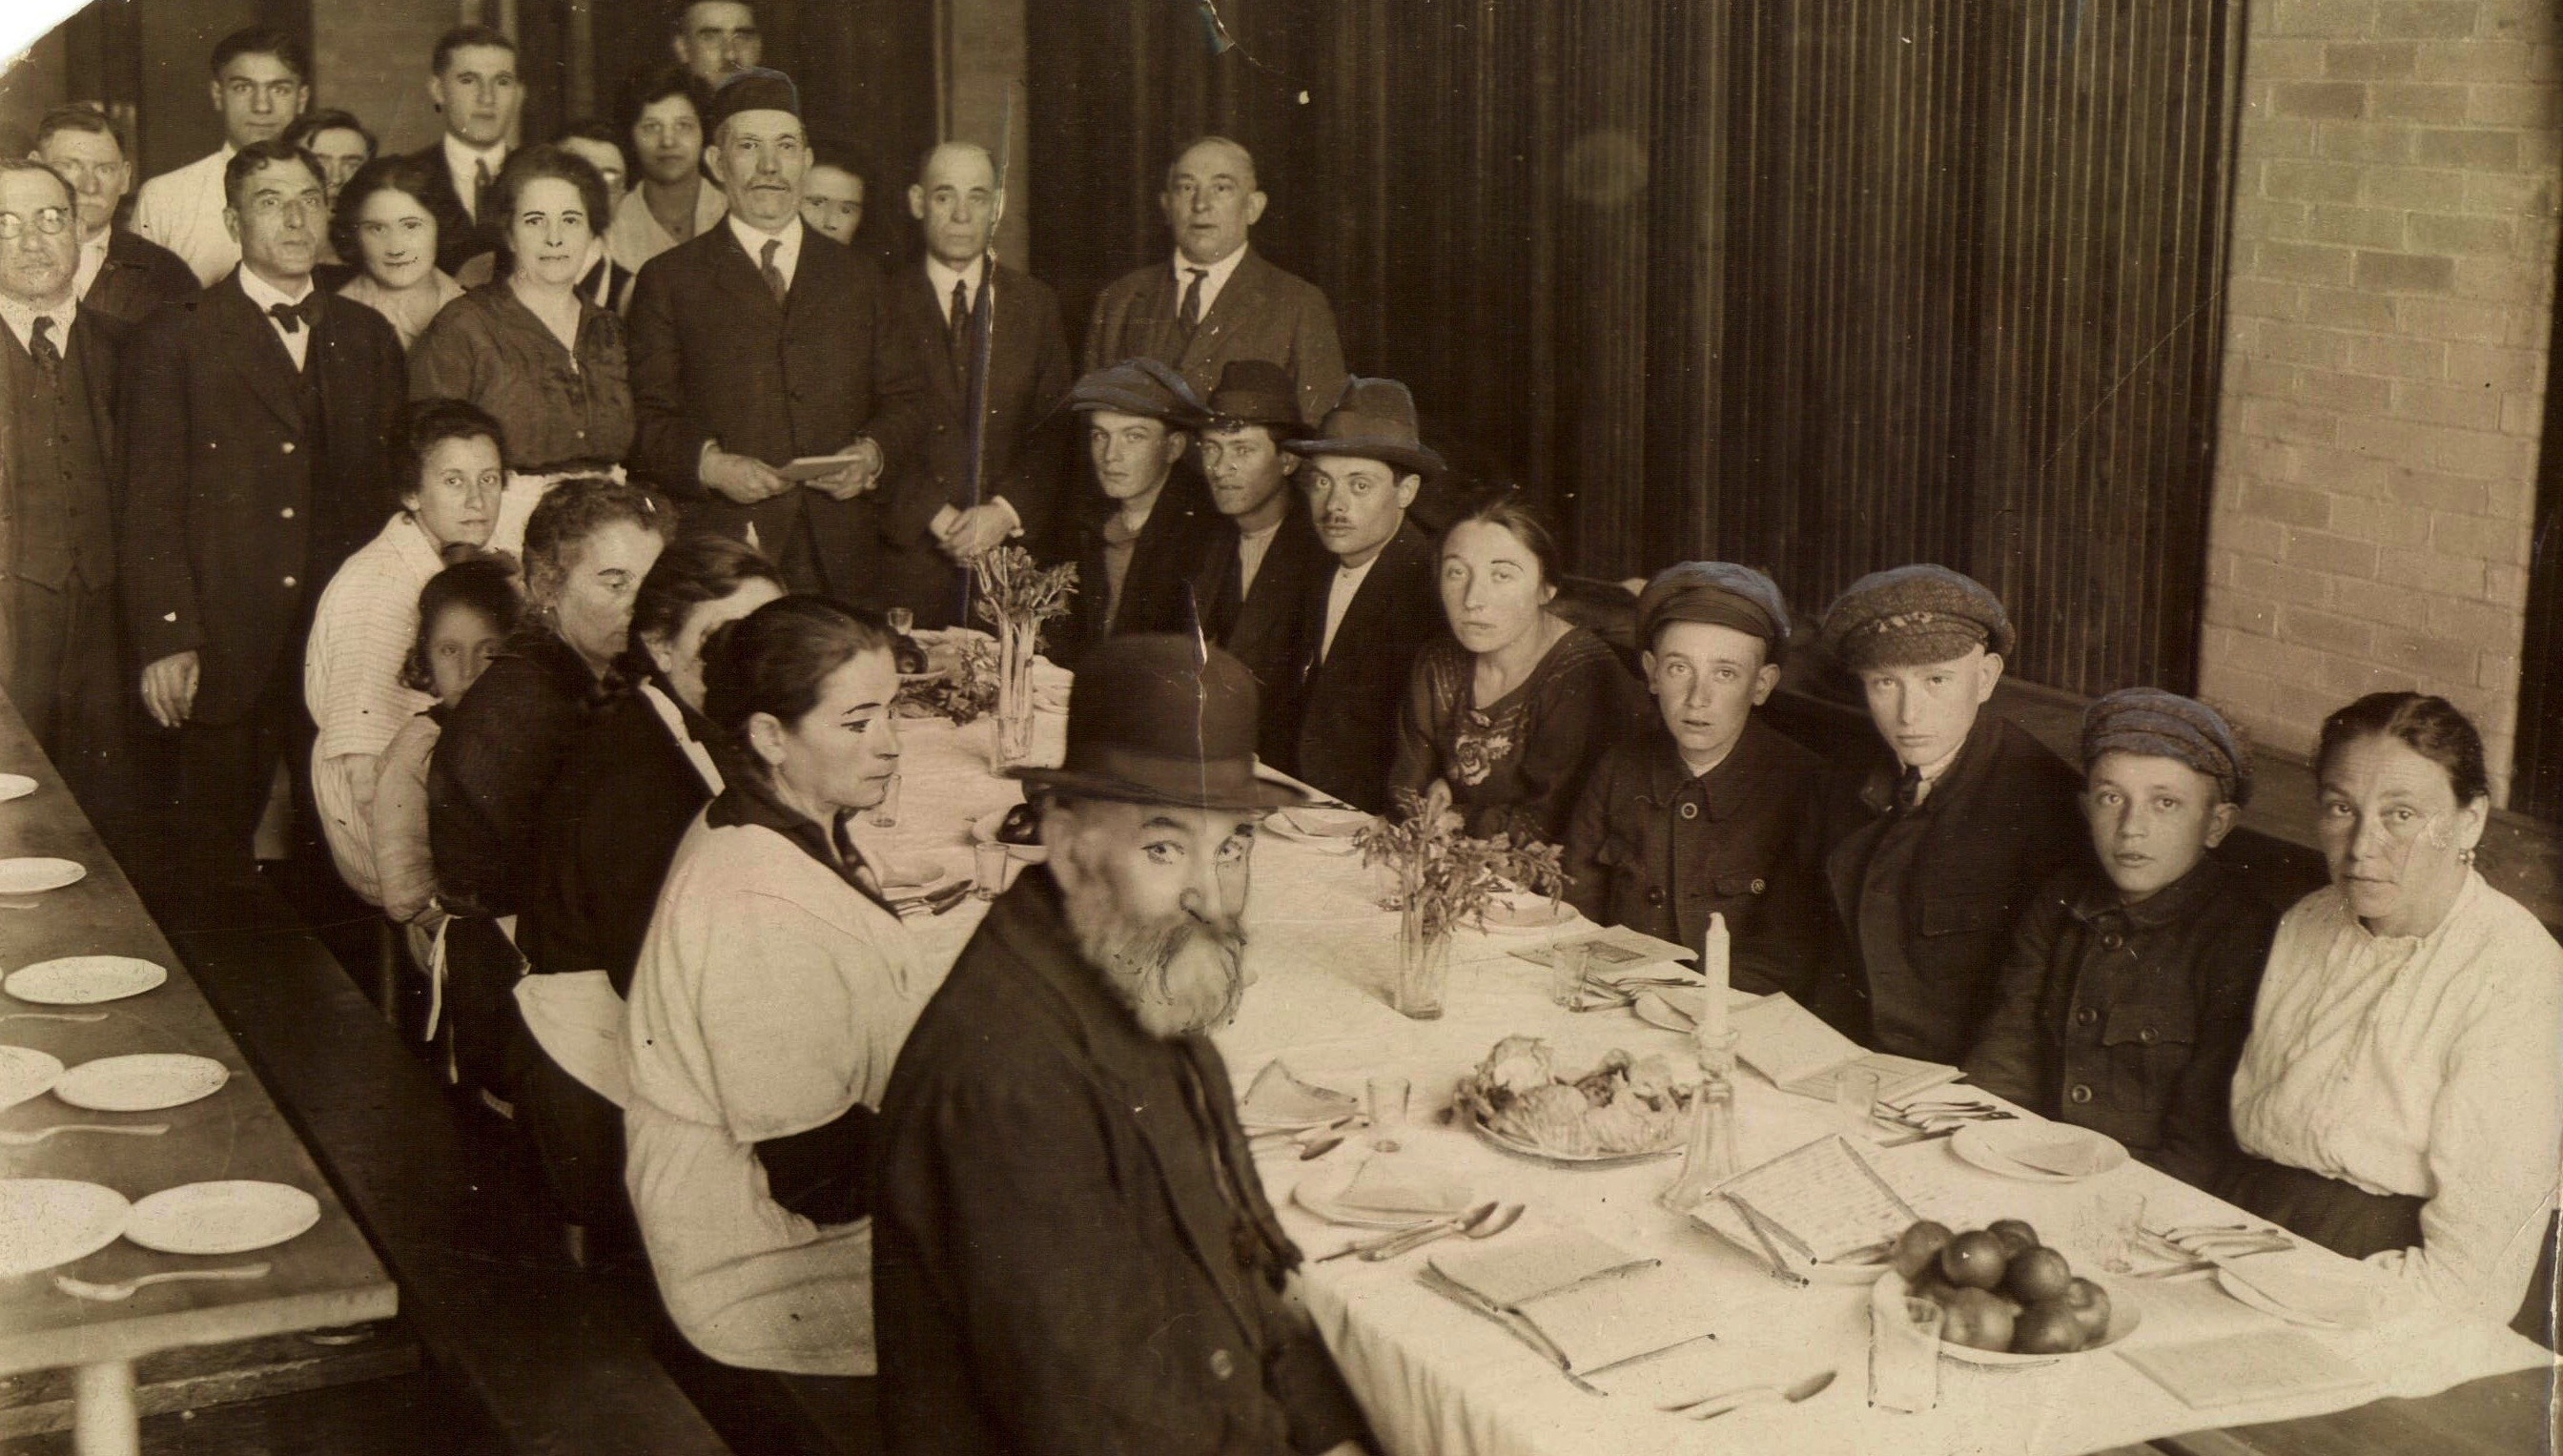 Passover Seder Provided By The Hebrew Immigrant Aid Society For New Arrivals At The East Boston Immigration Station, 1921. Photograph By Permission Of The American Jewish Historical Society-New England Archives, Boston, MA.